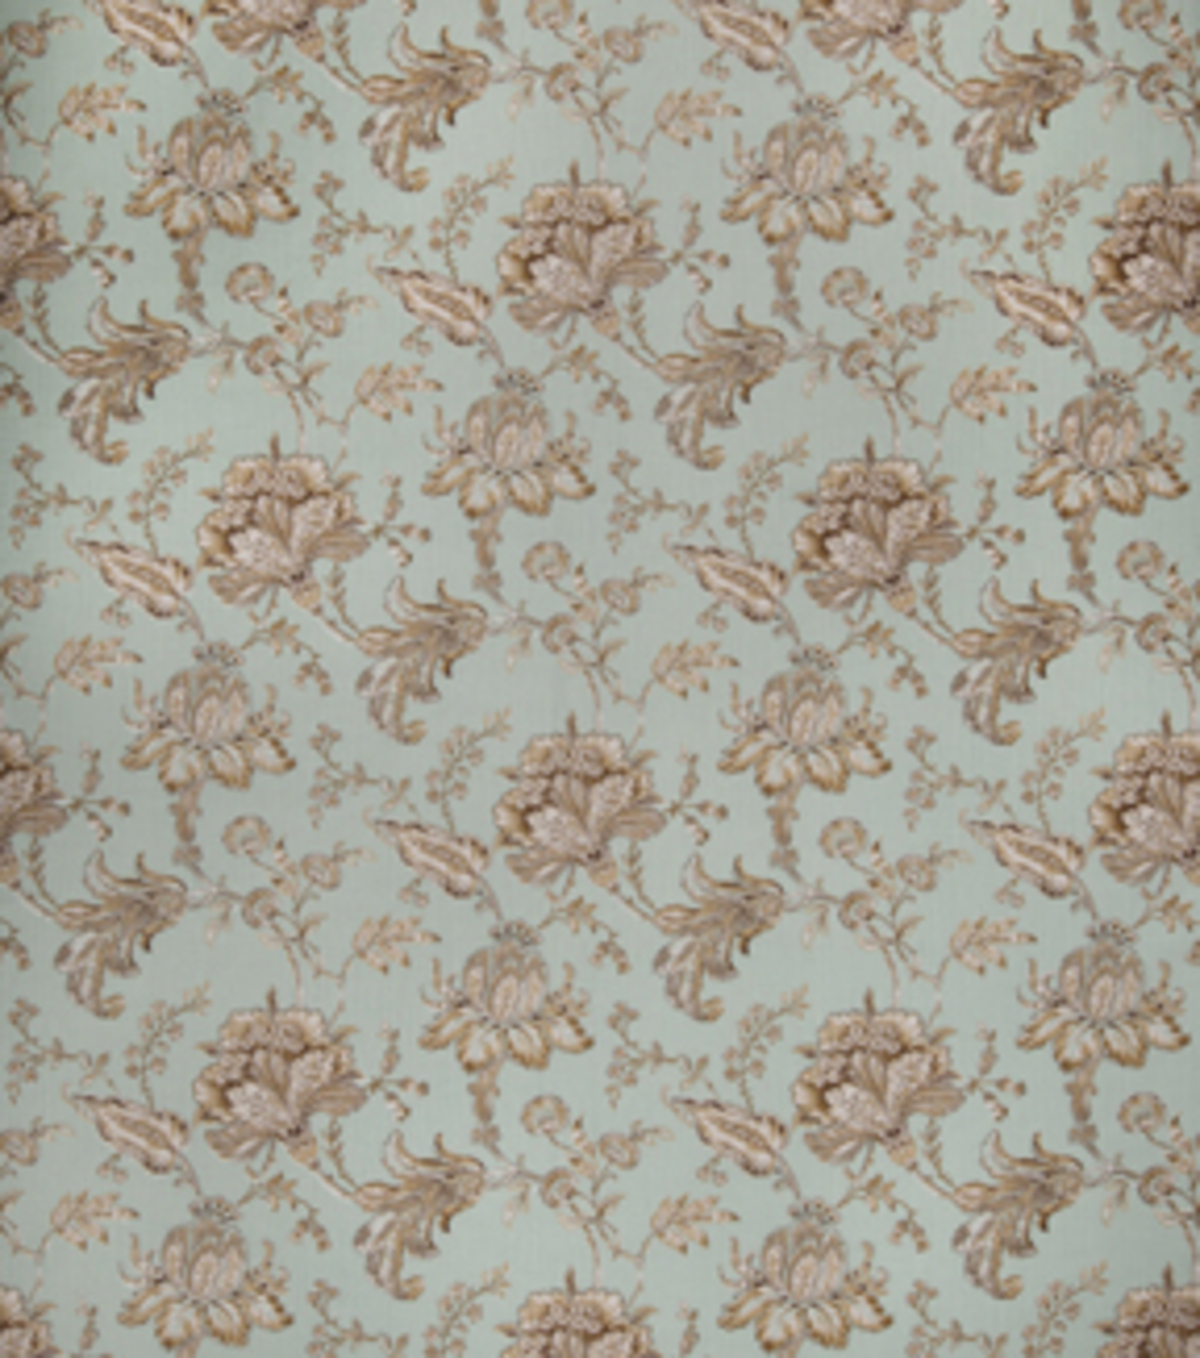 Home Decor 8\u0022x8\u0022 Fabric Swatch-Upholstery Fabric Eaton Square Levy Mist